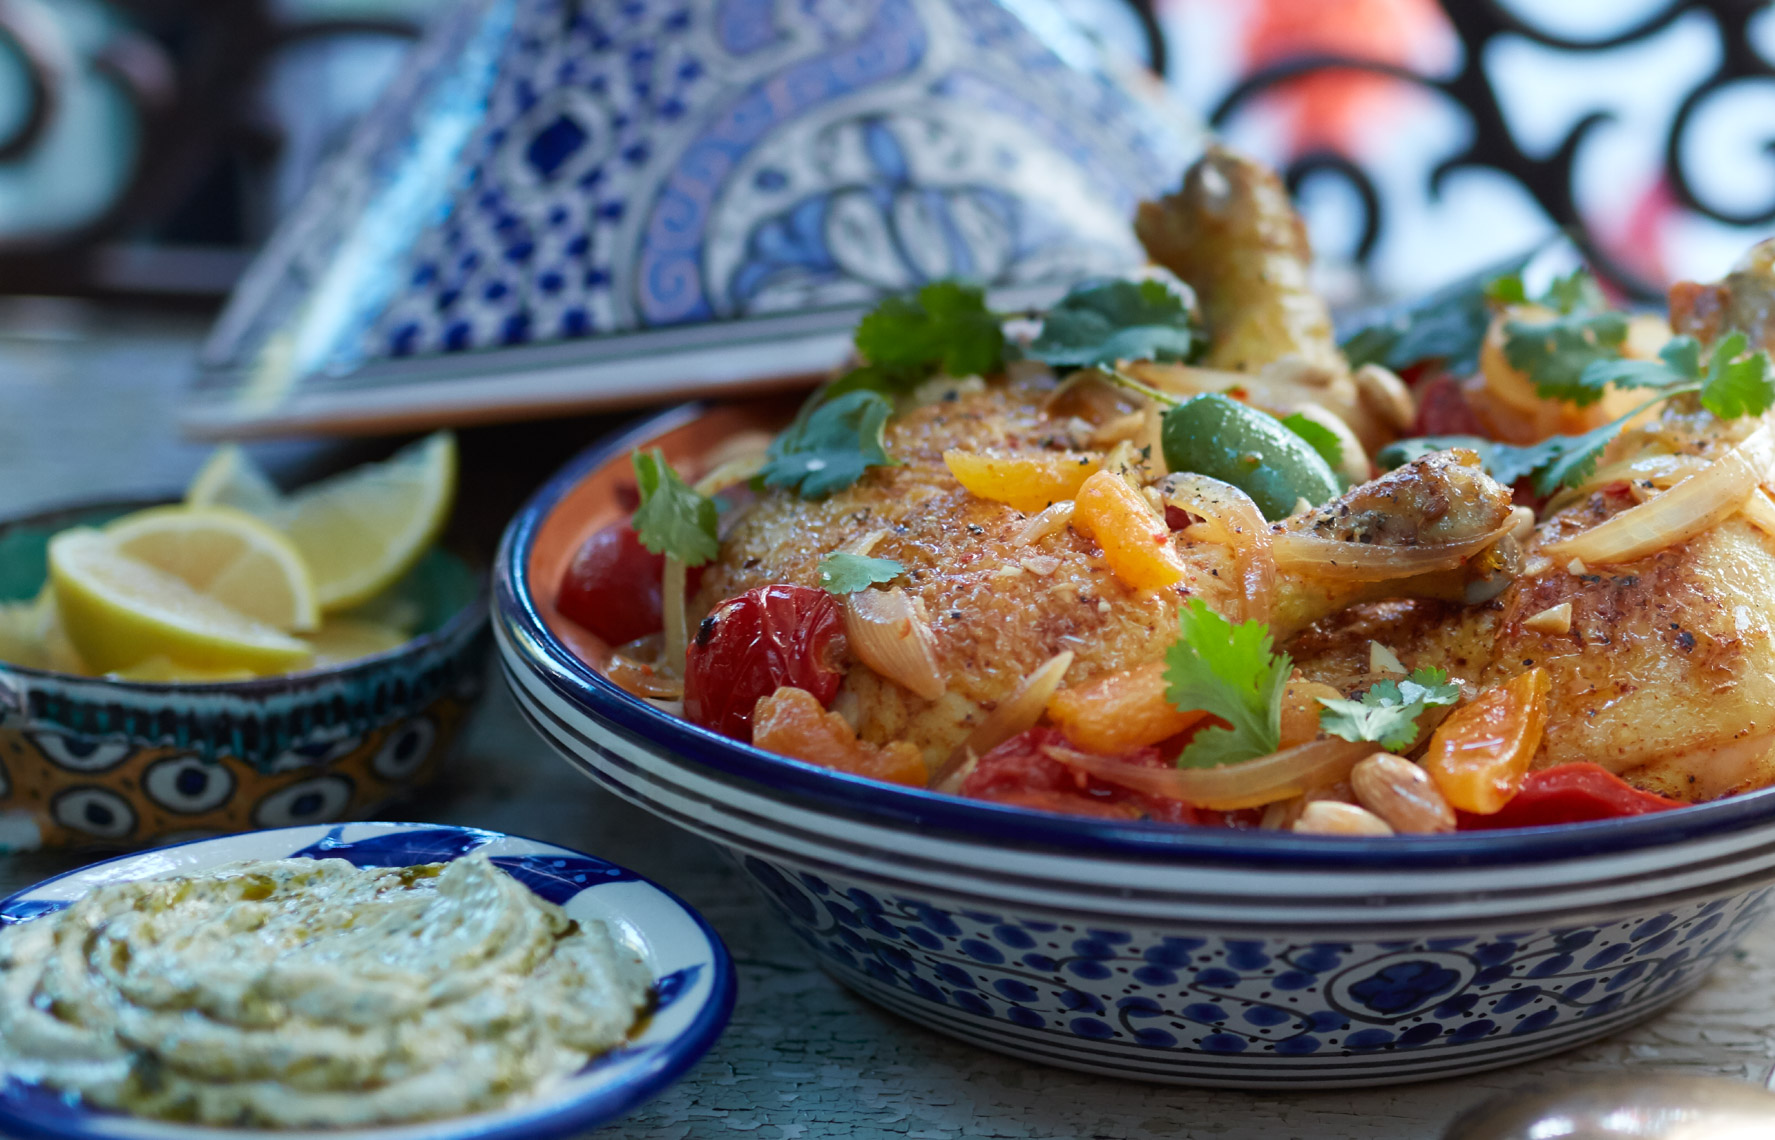 chicken tagine on blue moroccan bowl with lemon and hummus San Francisco food photographer